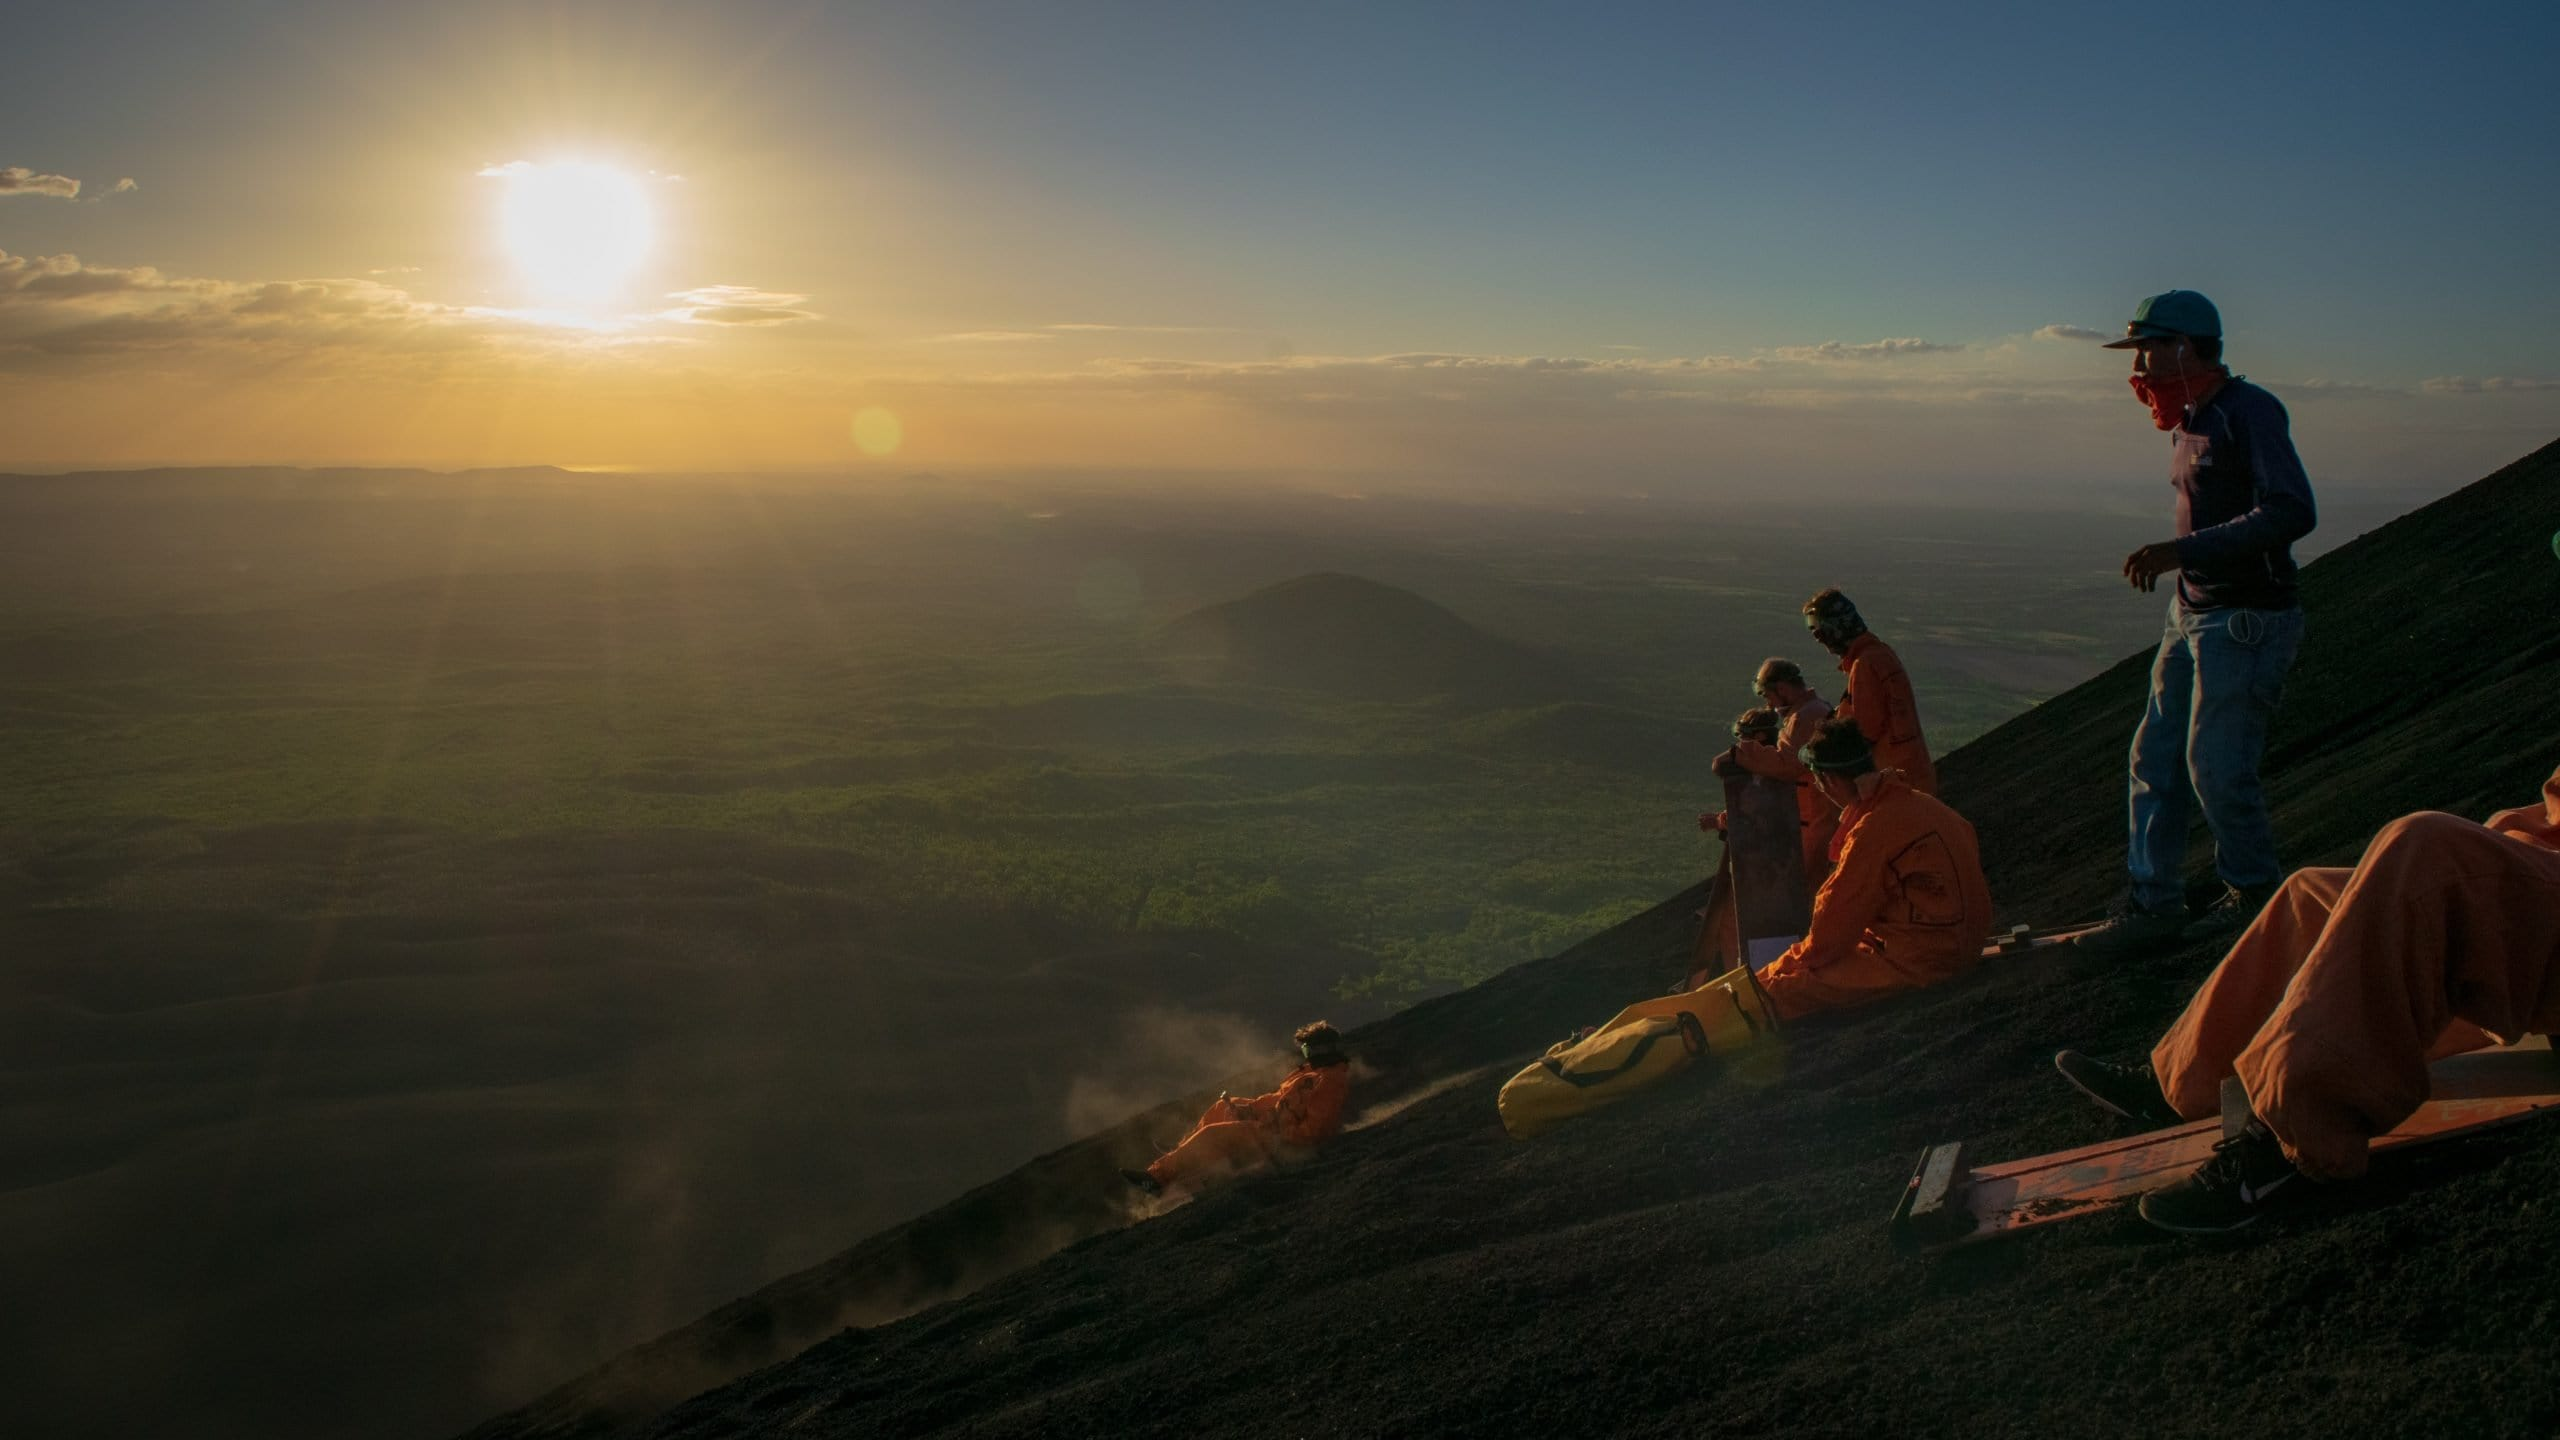 Volcano Boarding: Where and how to sandboard on active volcanoes